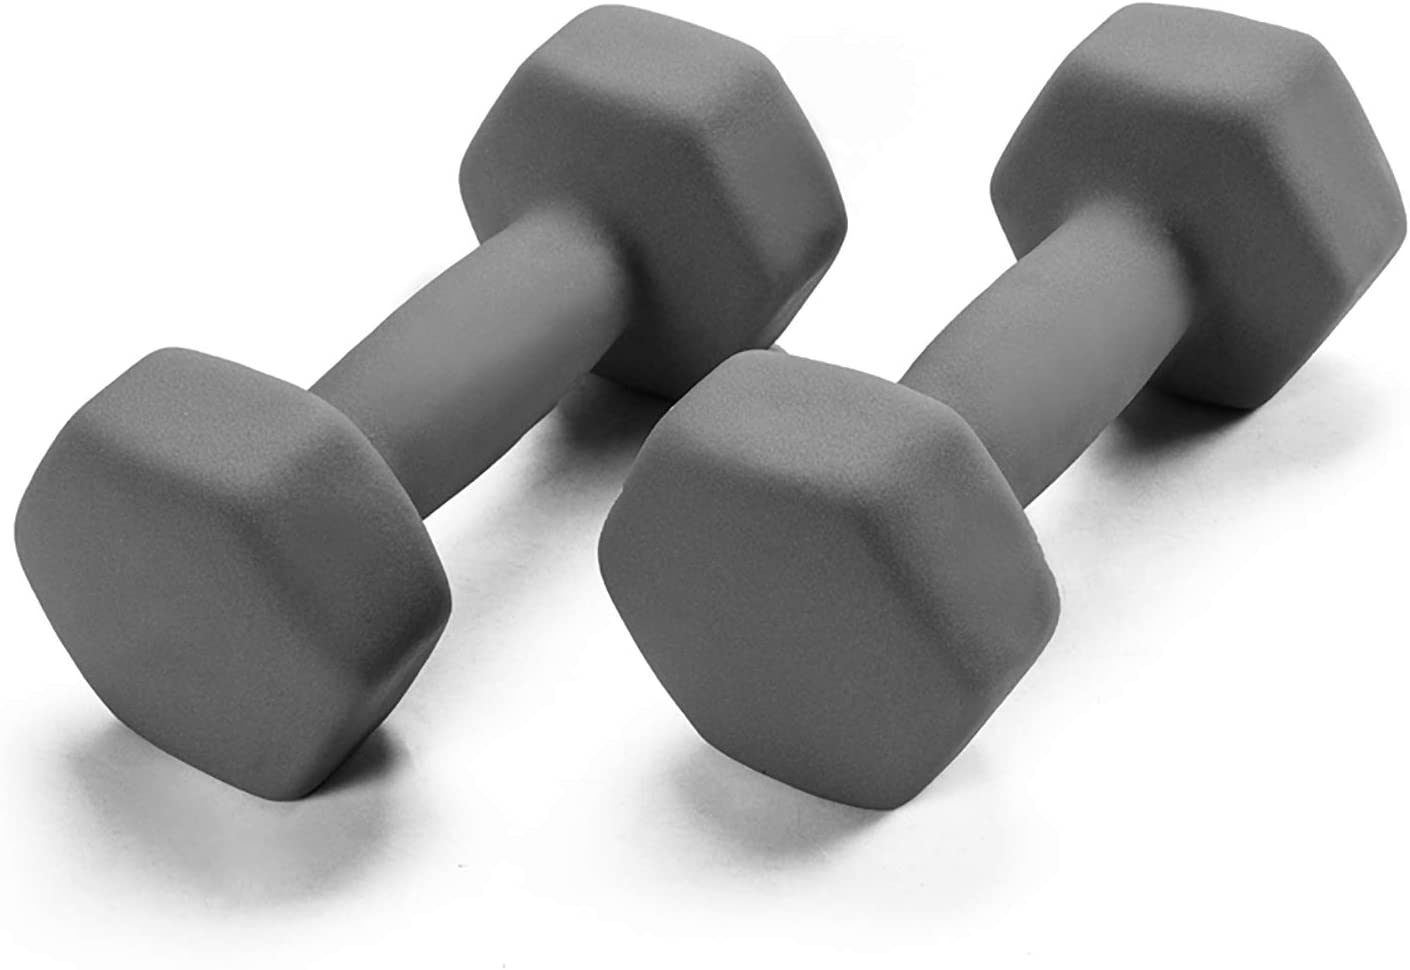 Portzon Set of Max 86% Shipping included OFF 2 Neoprene Anti-Slip Anti Hand Weights Dumbbell